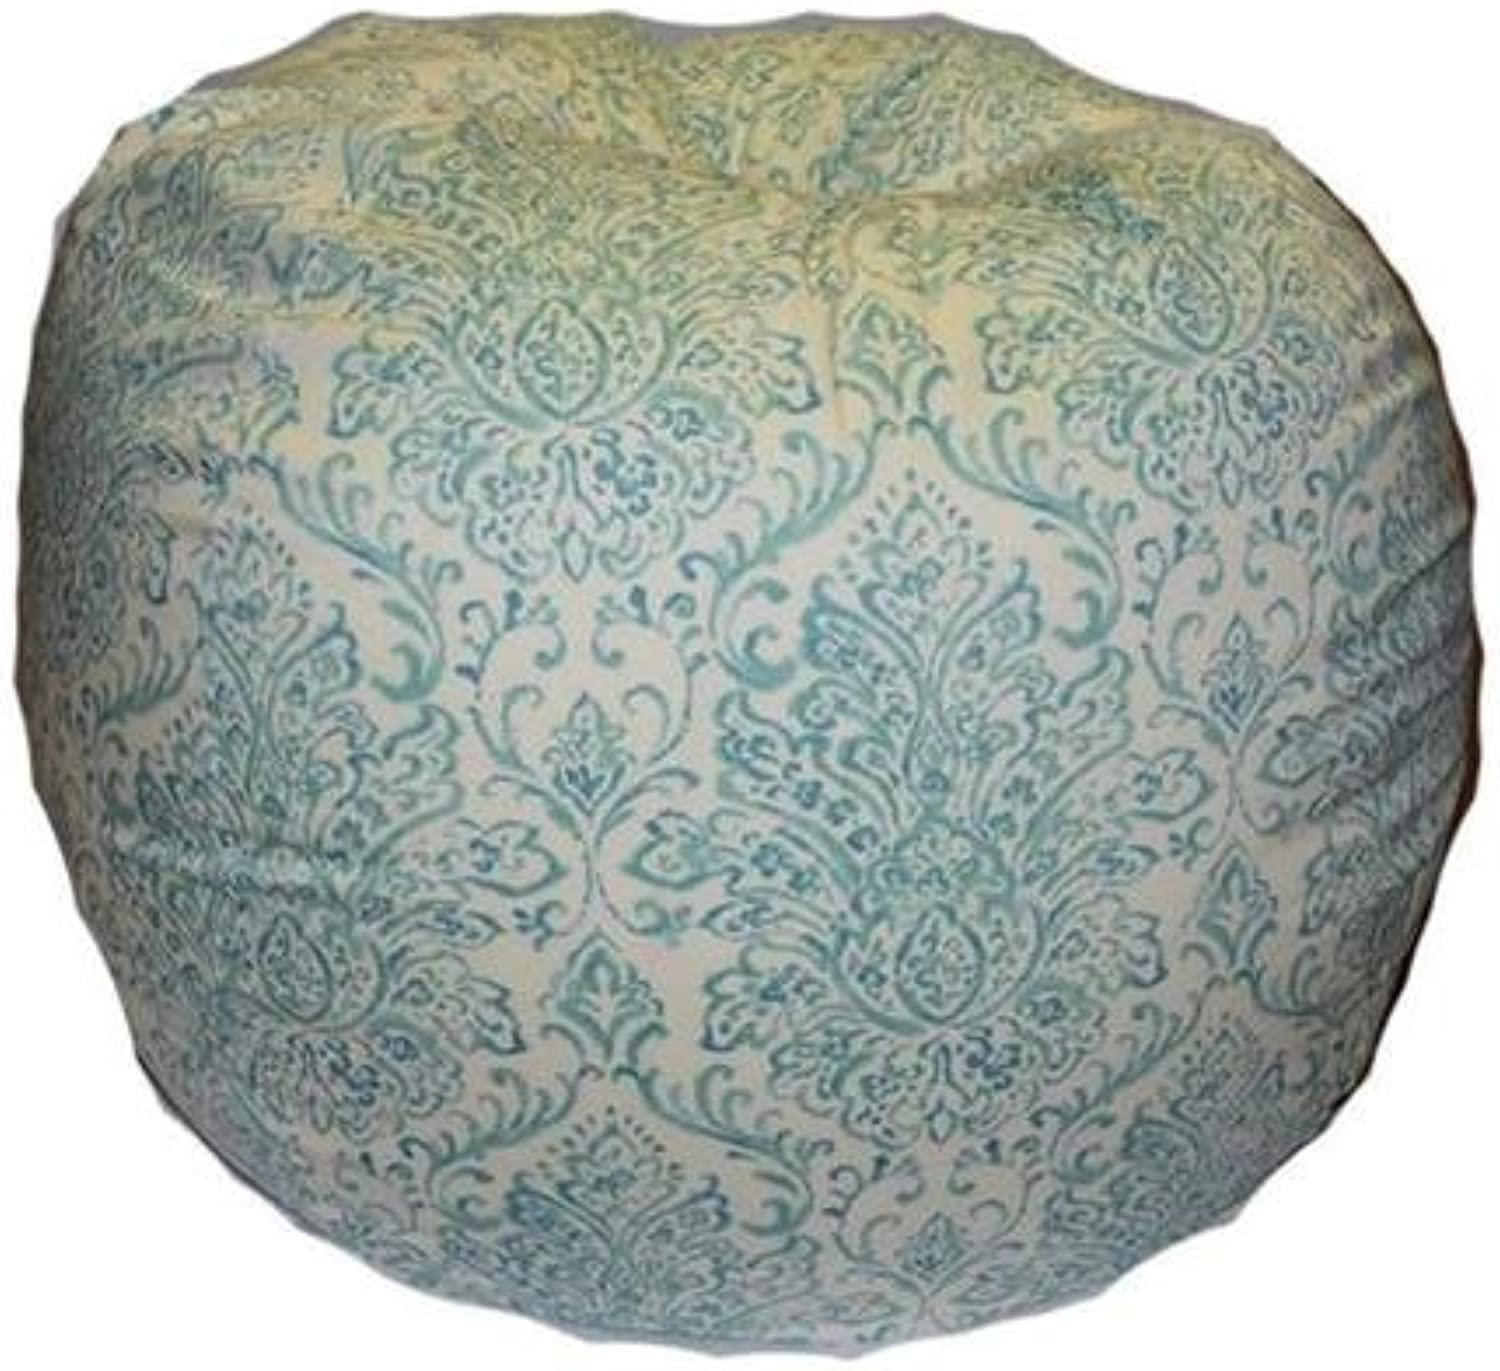 Mybeanbag Chair Giant - blueeberry Medallion